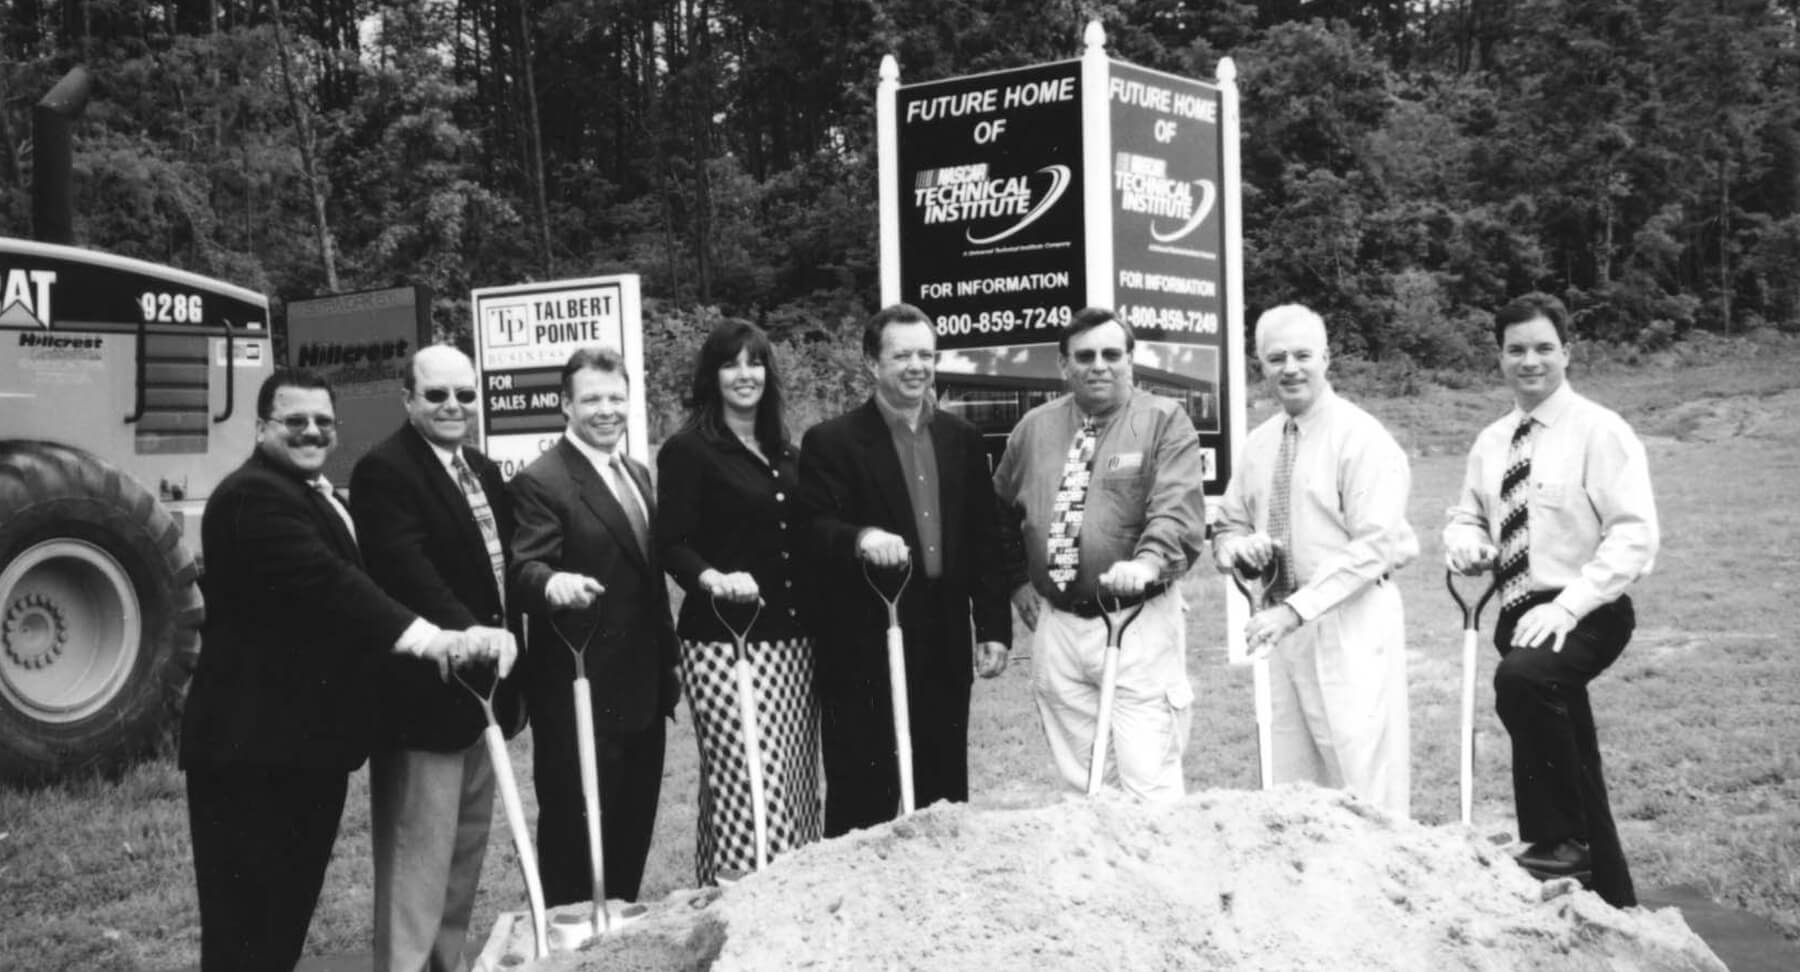 Black and white photo of the founders of the Nascar Technical Institute in Mooresville North Carolina